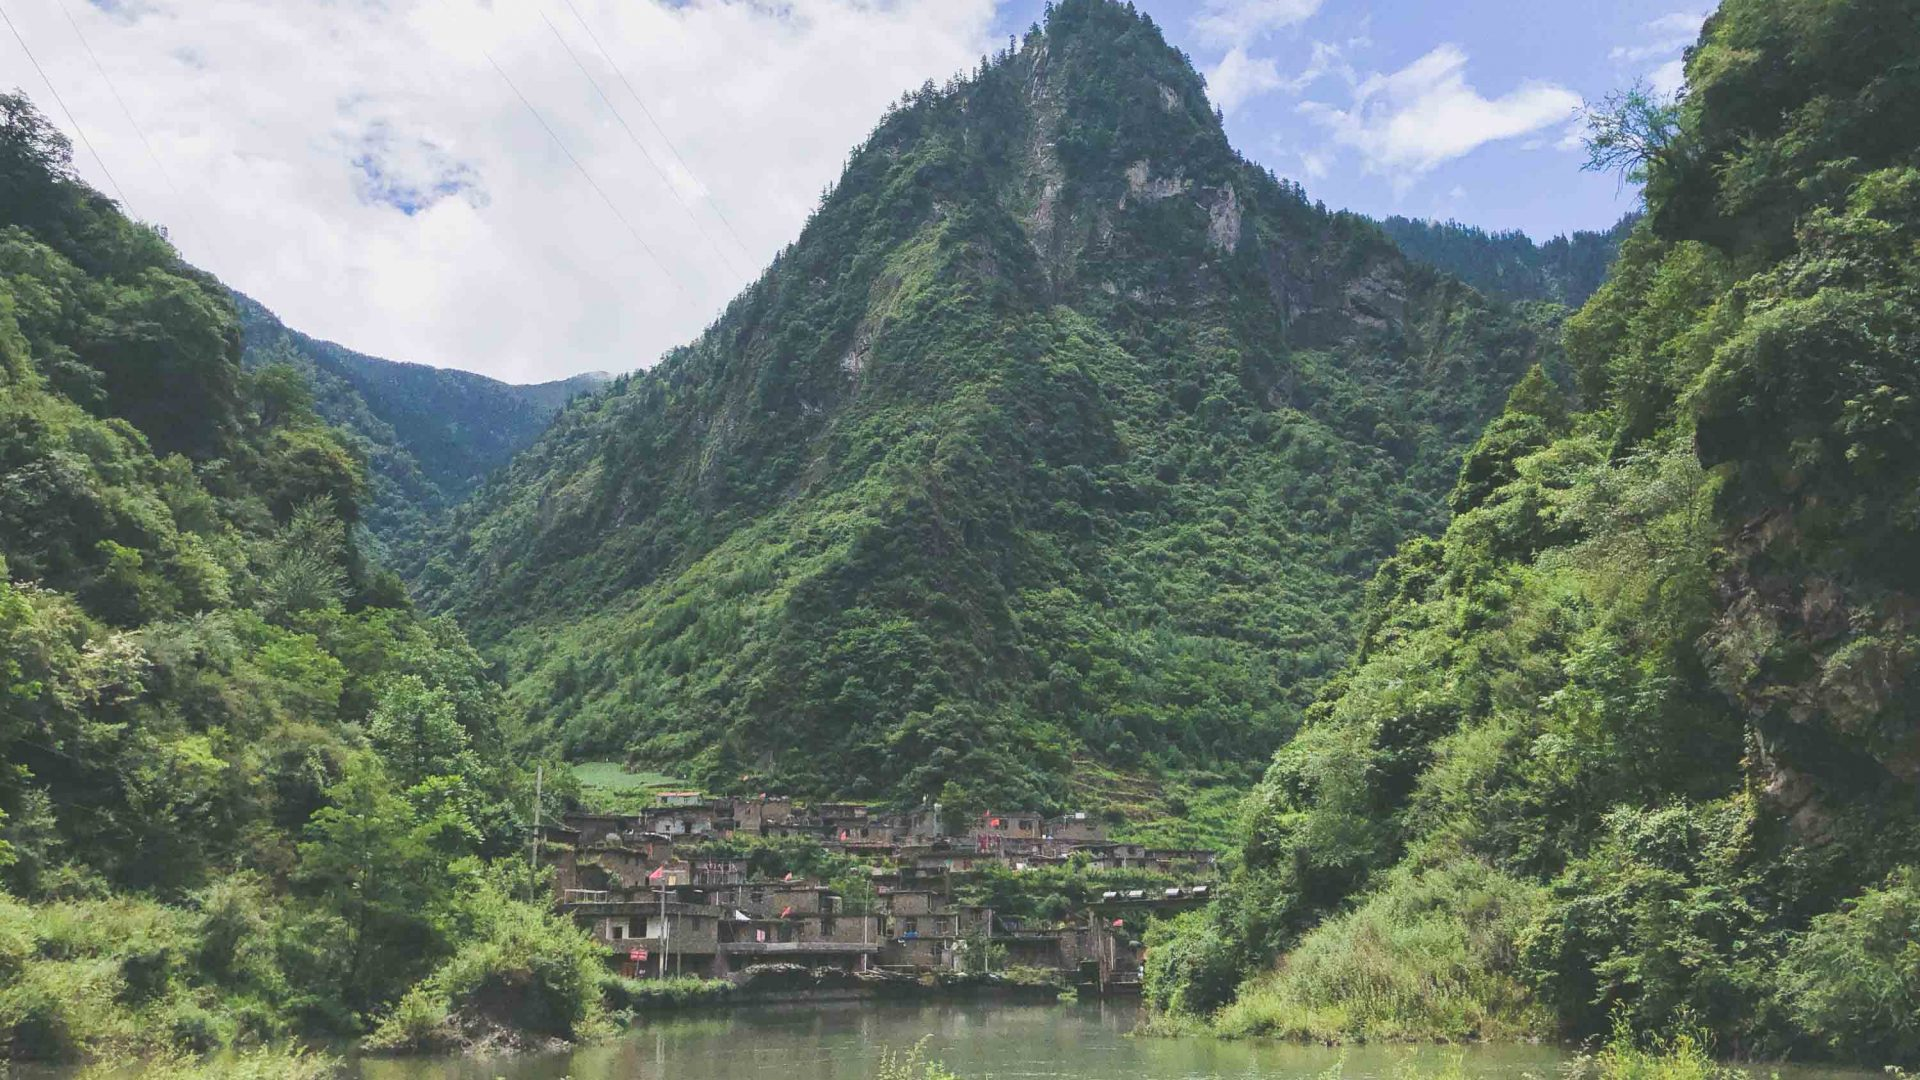 A typical Qiang village in China.